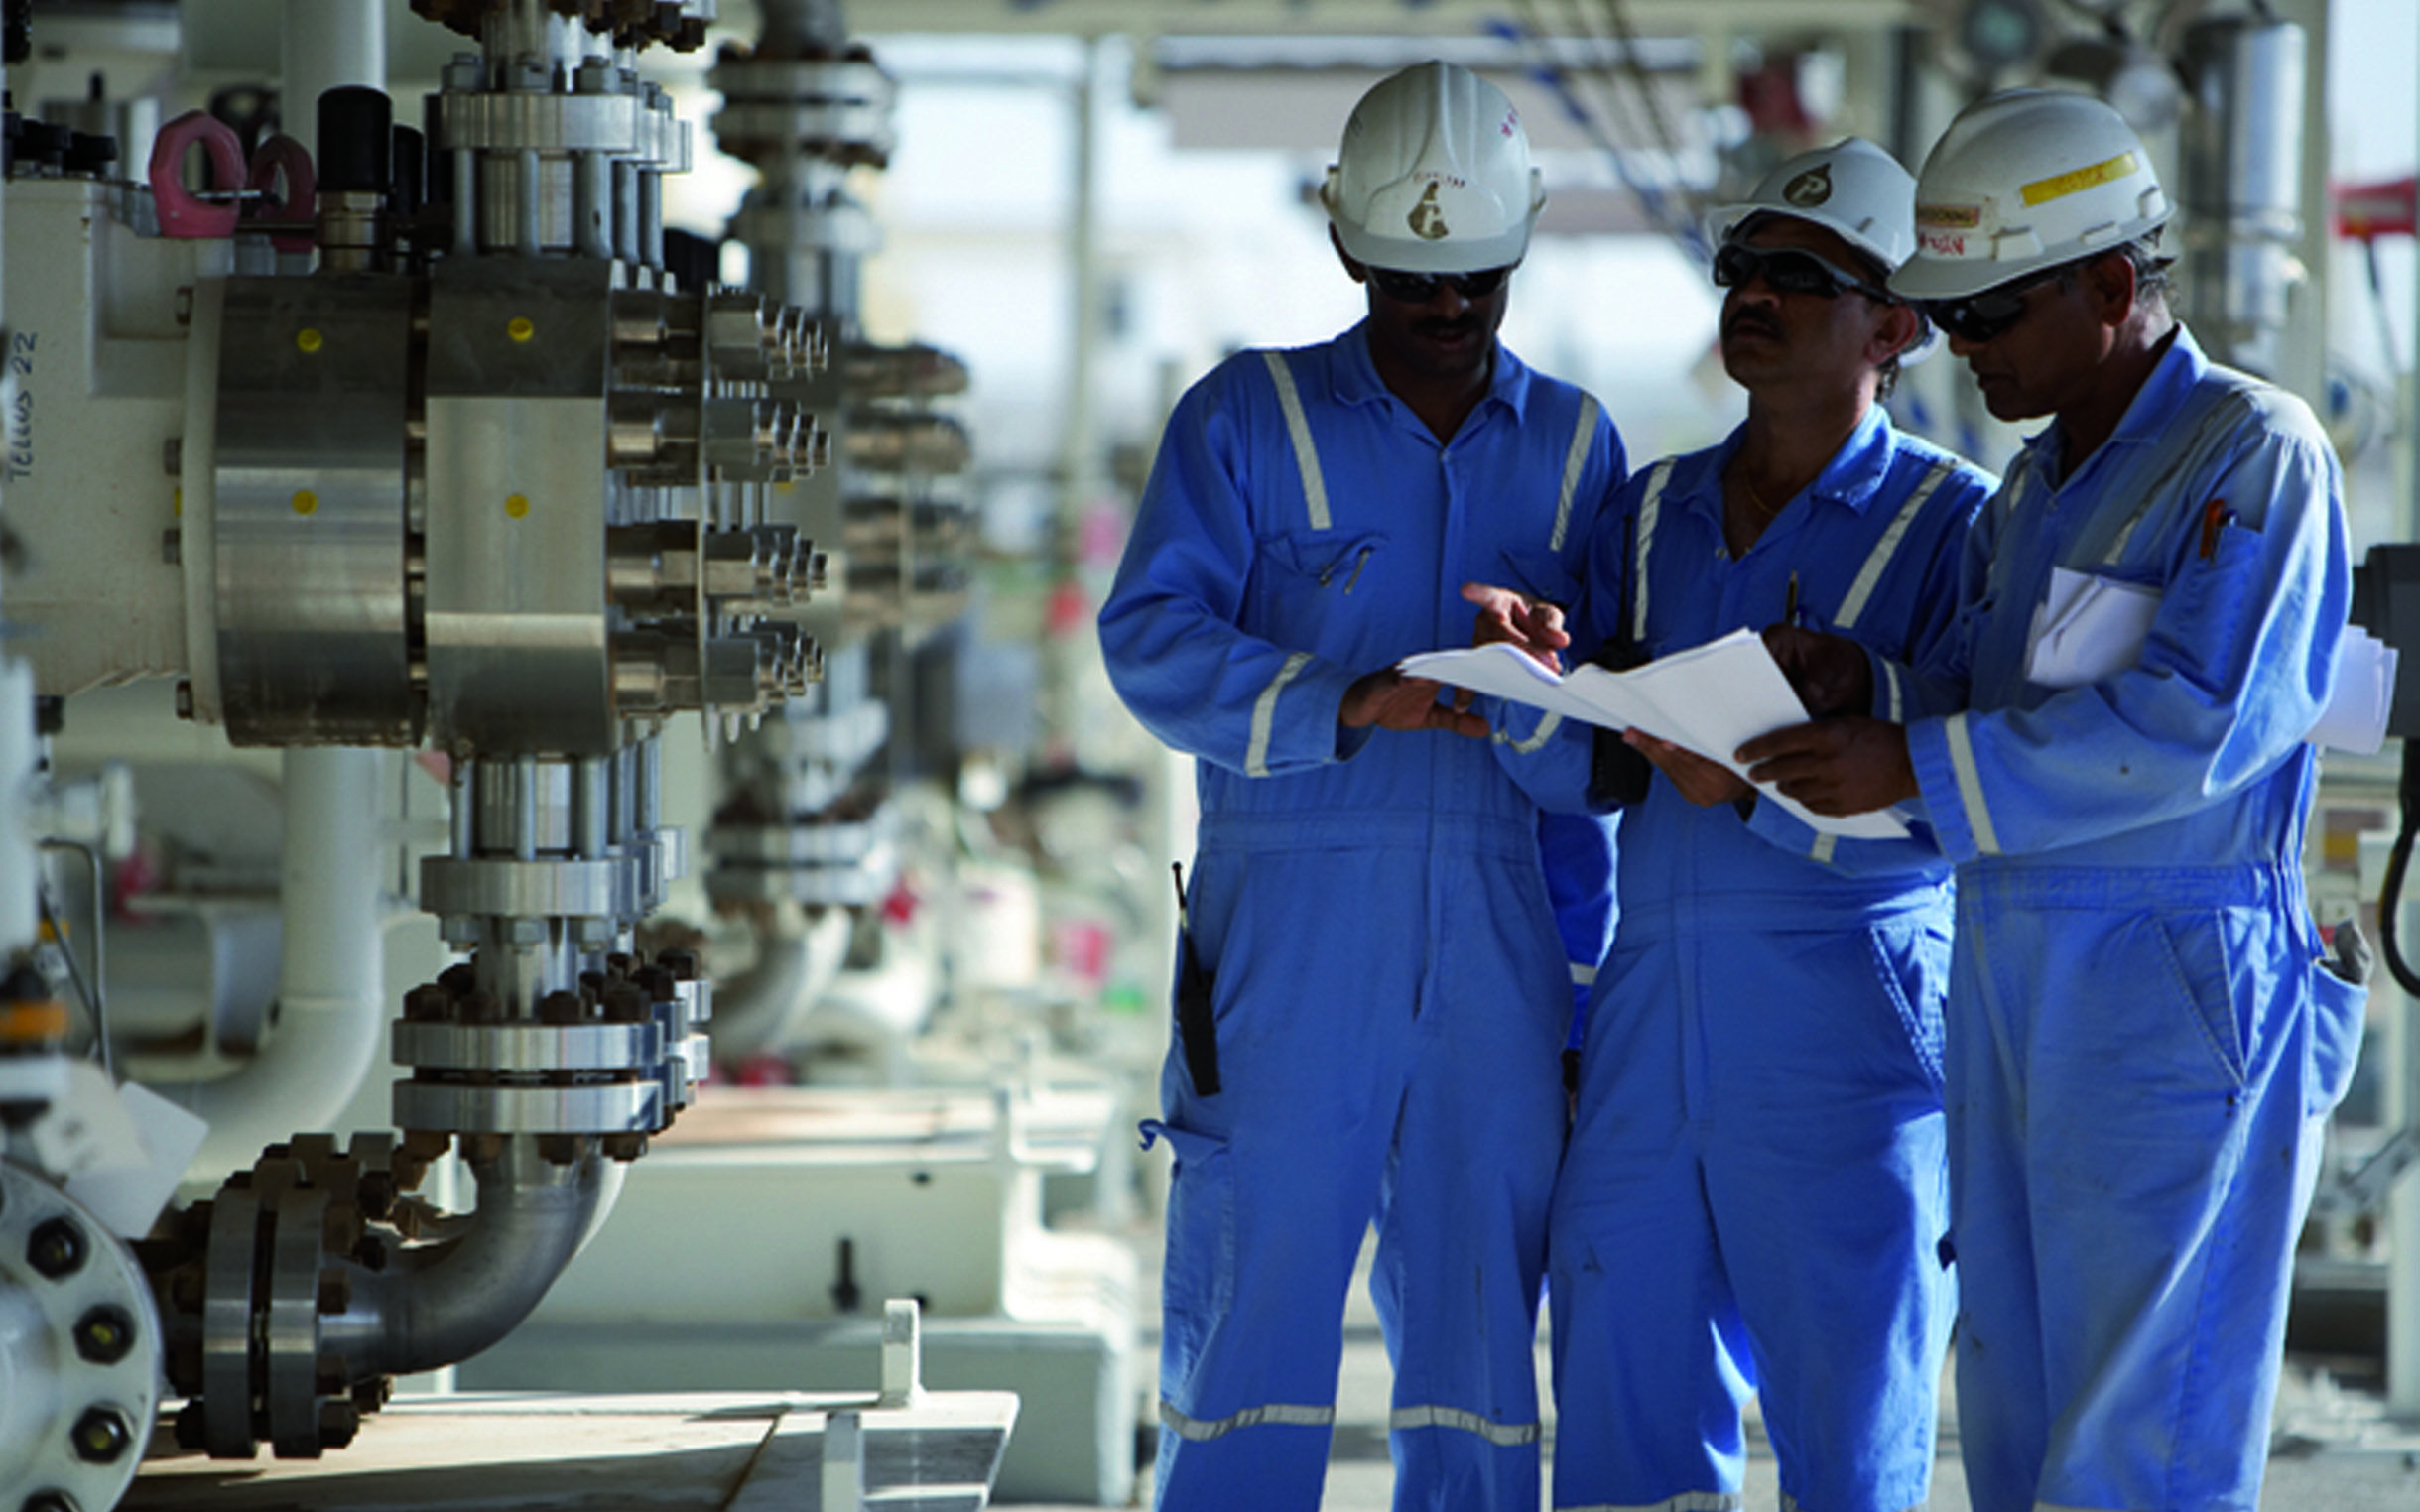 Job Vacancy At Petrofac In Uae And Malaysia Company job